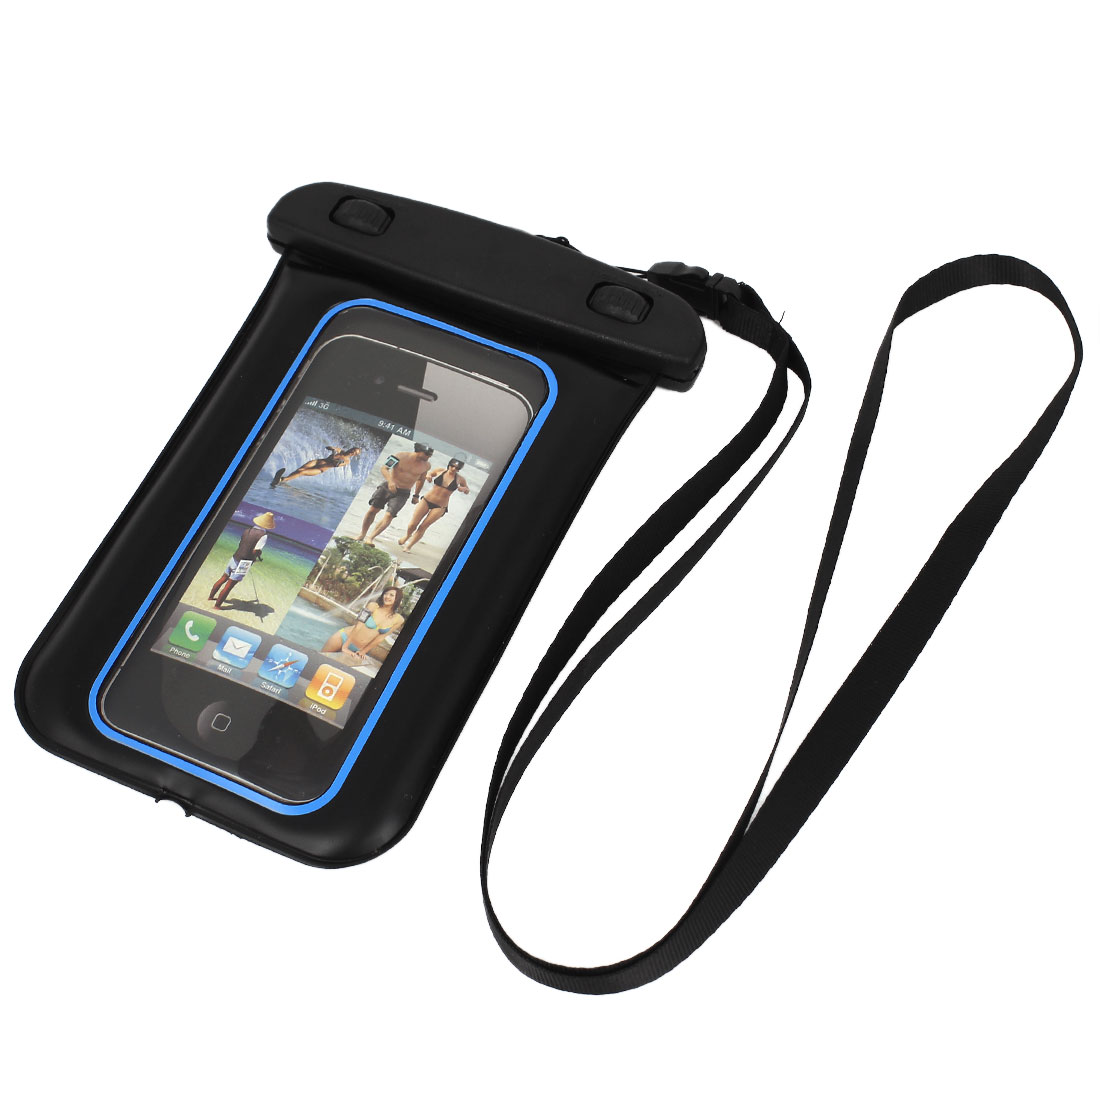 Unique Bargains Waterproof Case Dry Bag Cover Skin Pouch Blue + Neck Strap for Cell Phone